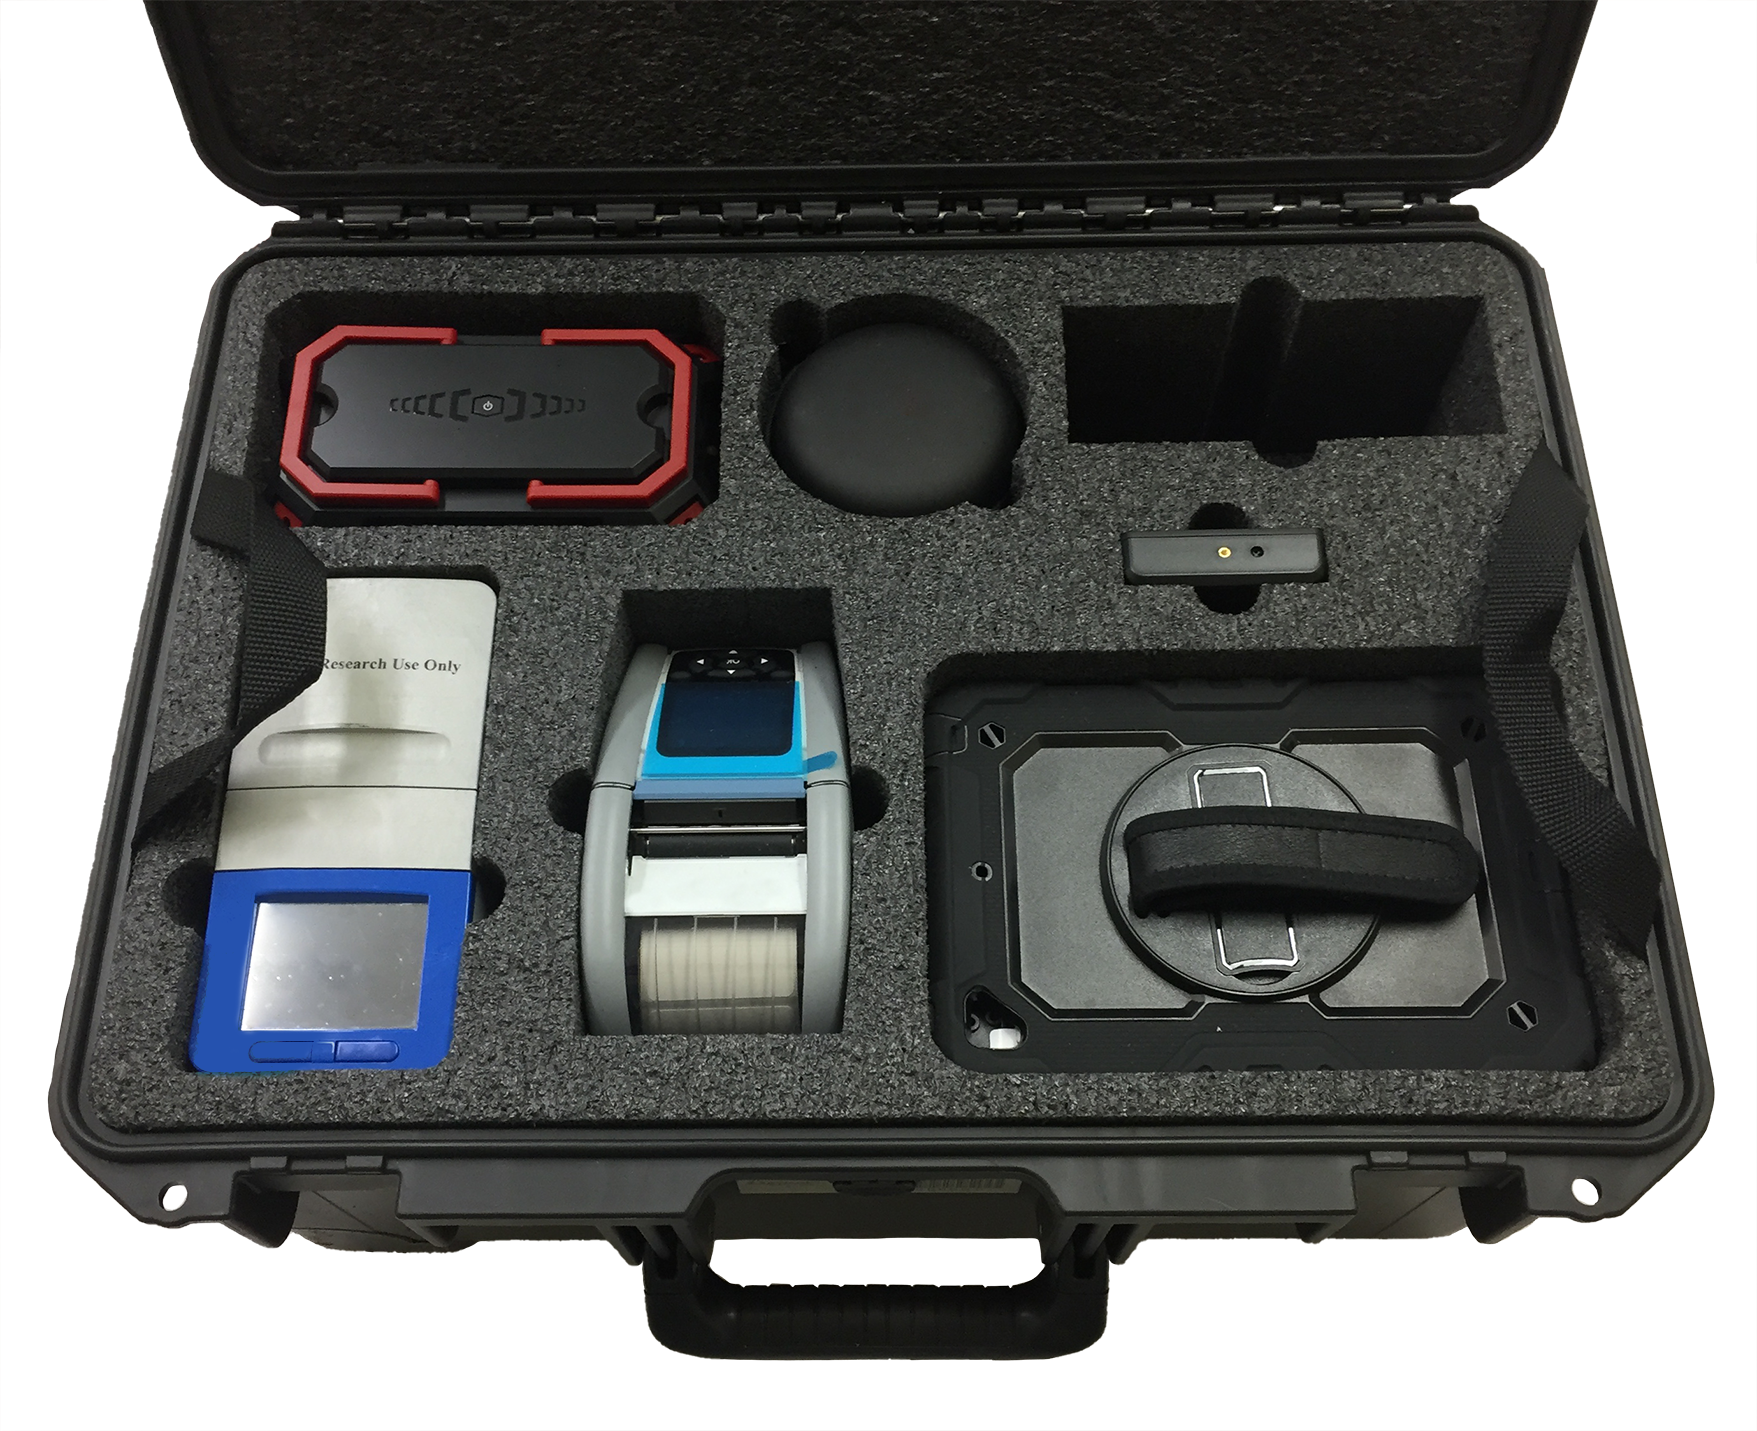 Customized Portable Medical Case to House COVID-19 Testing Kit Created by FUSH Cases